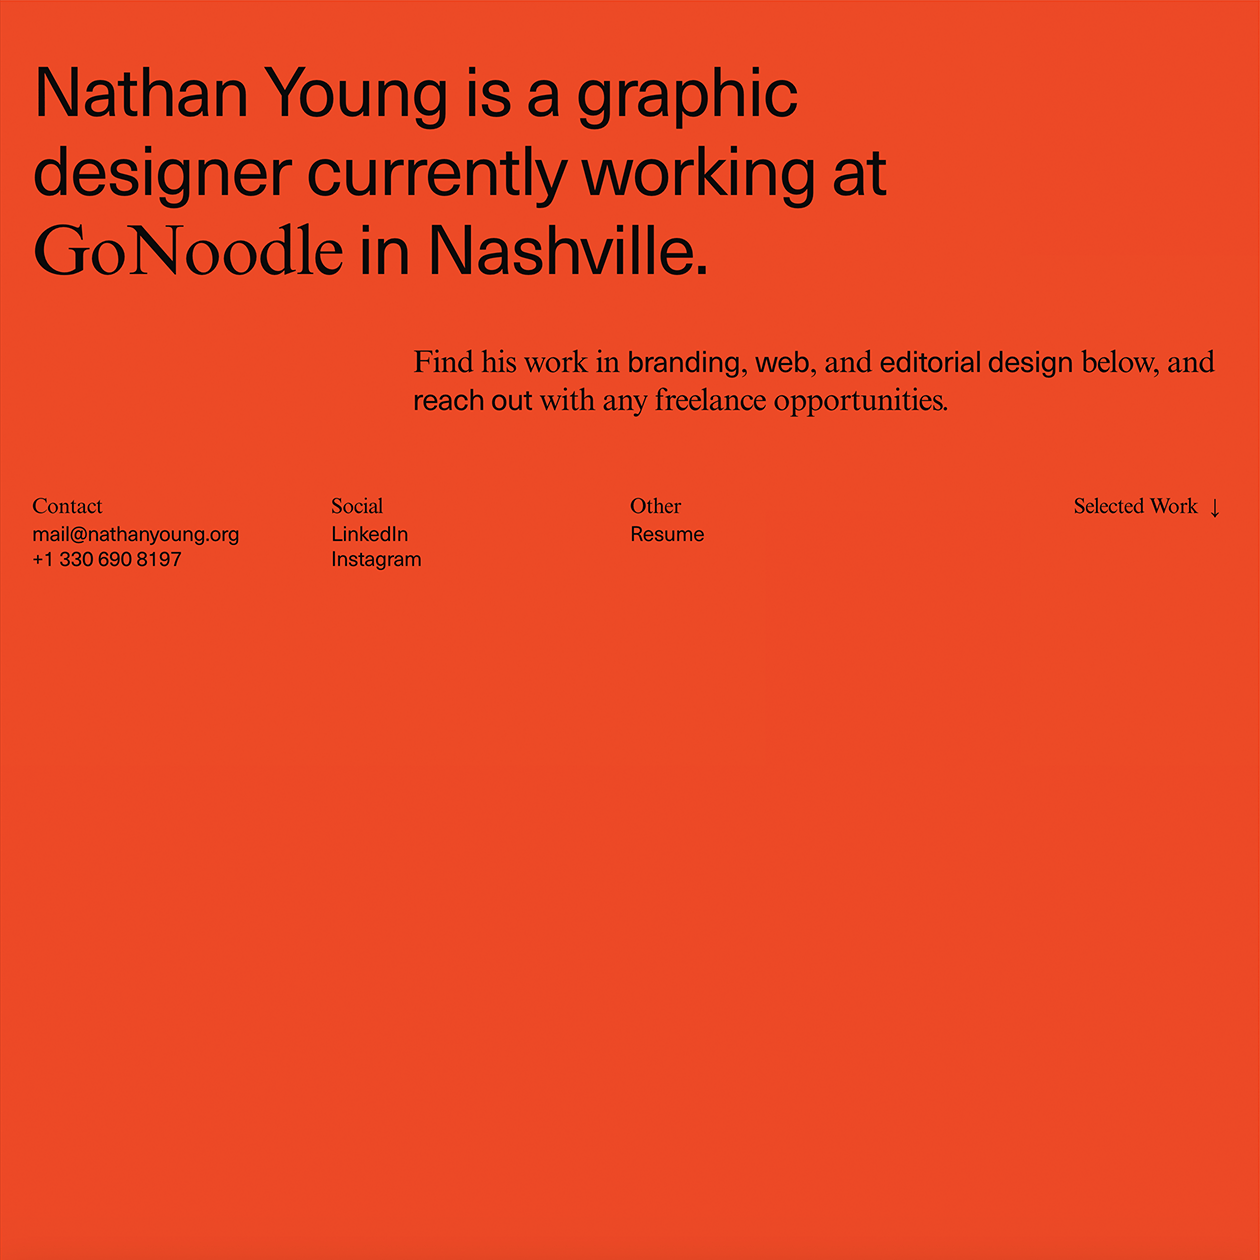 Nathan Young Typewolf In 2020 Web Design Design Graphic Design Typography